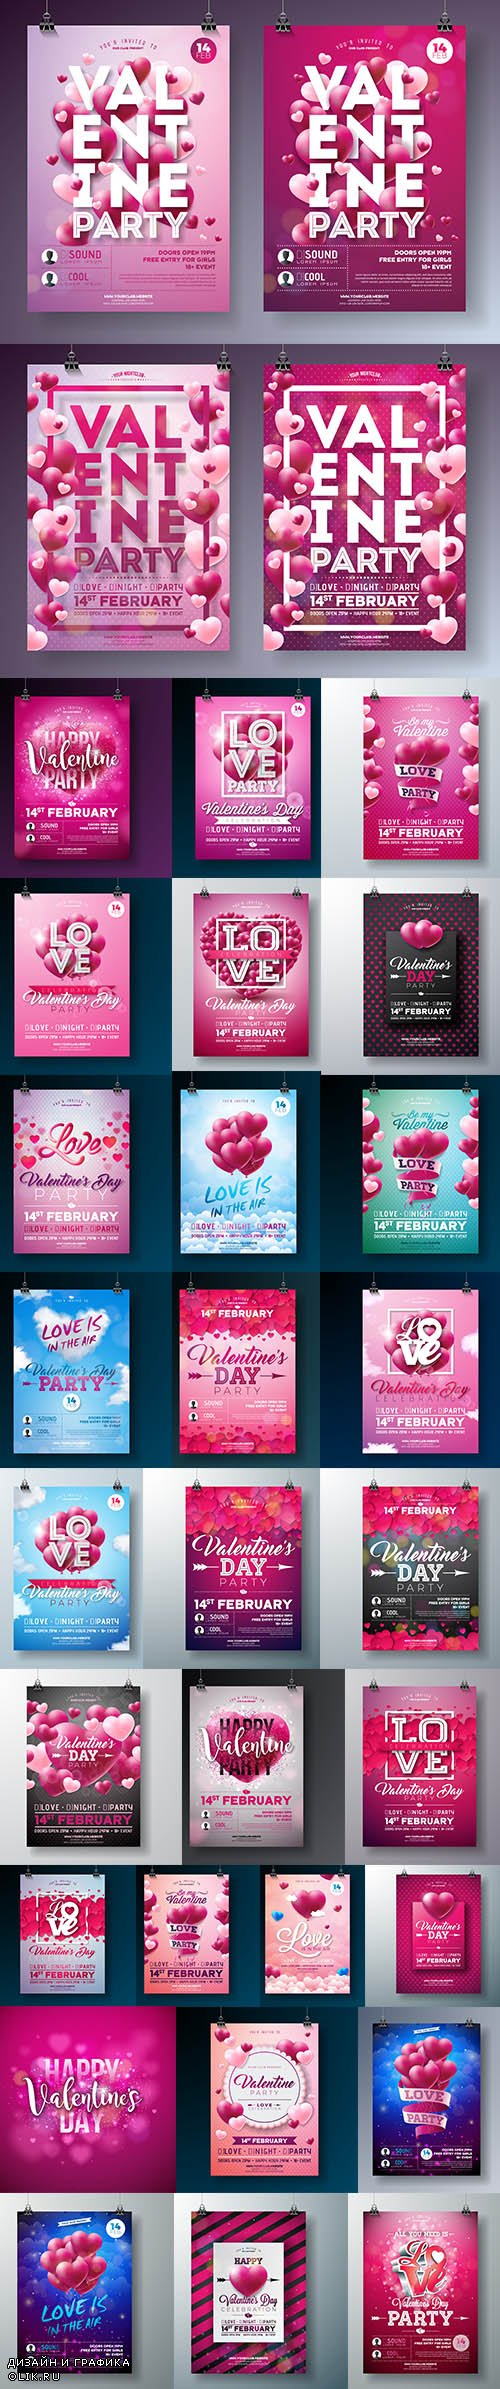 Valentines Day Love Party Flyers Template Pack